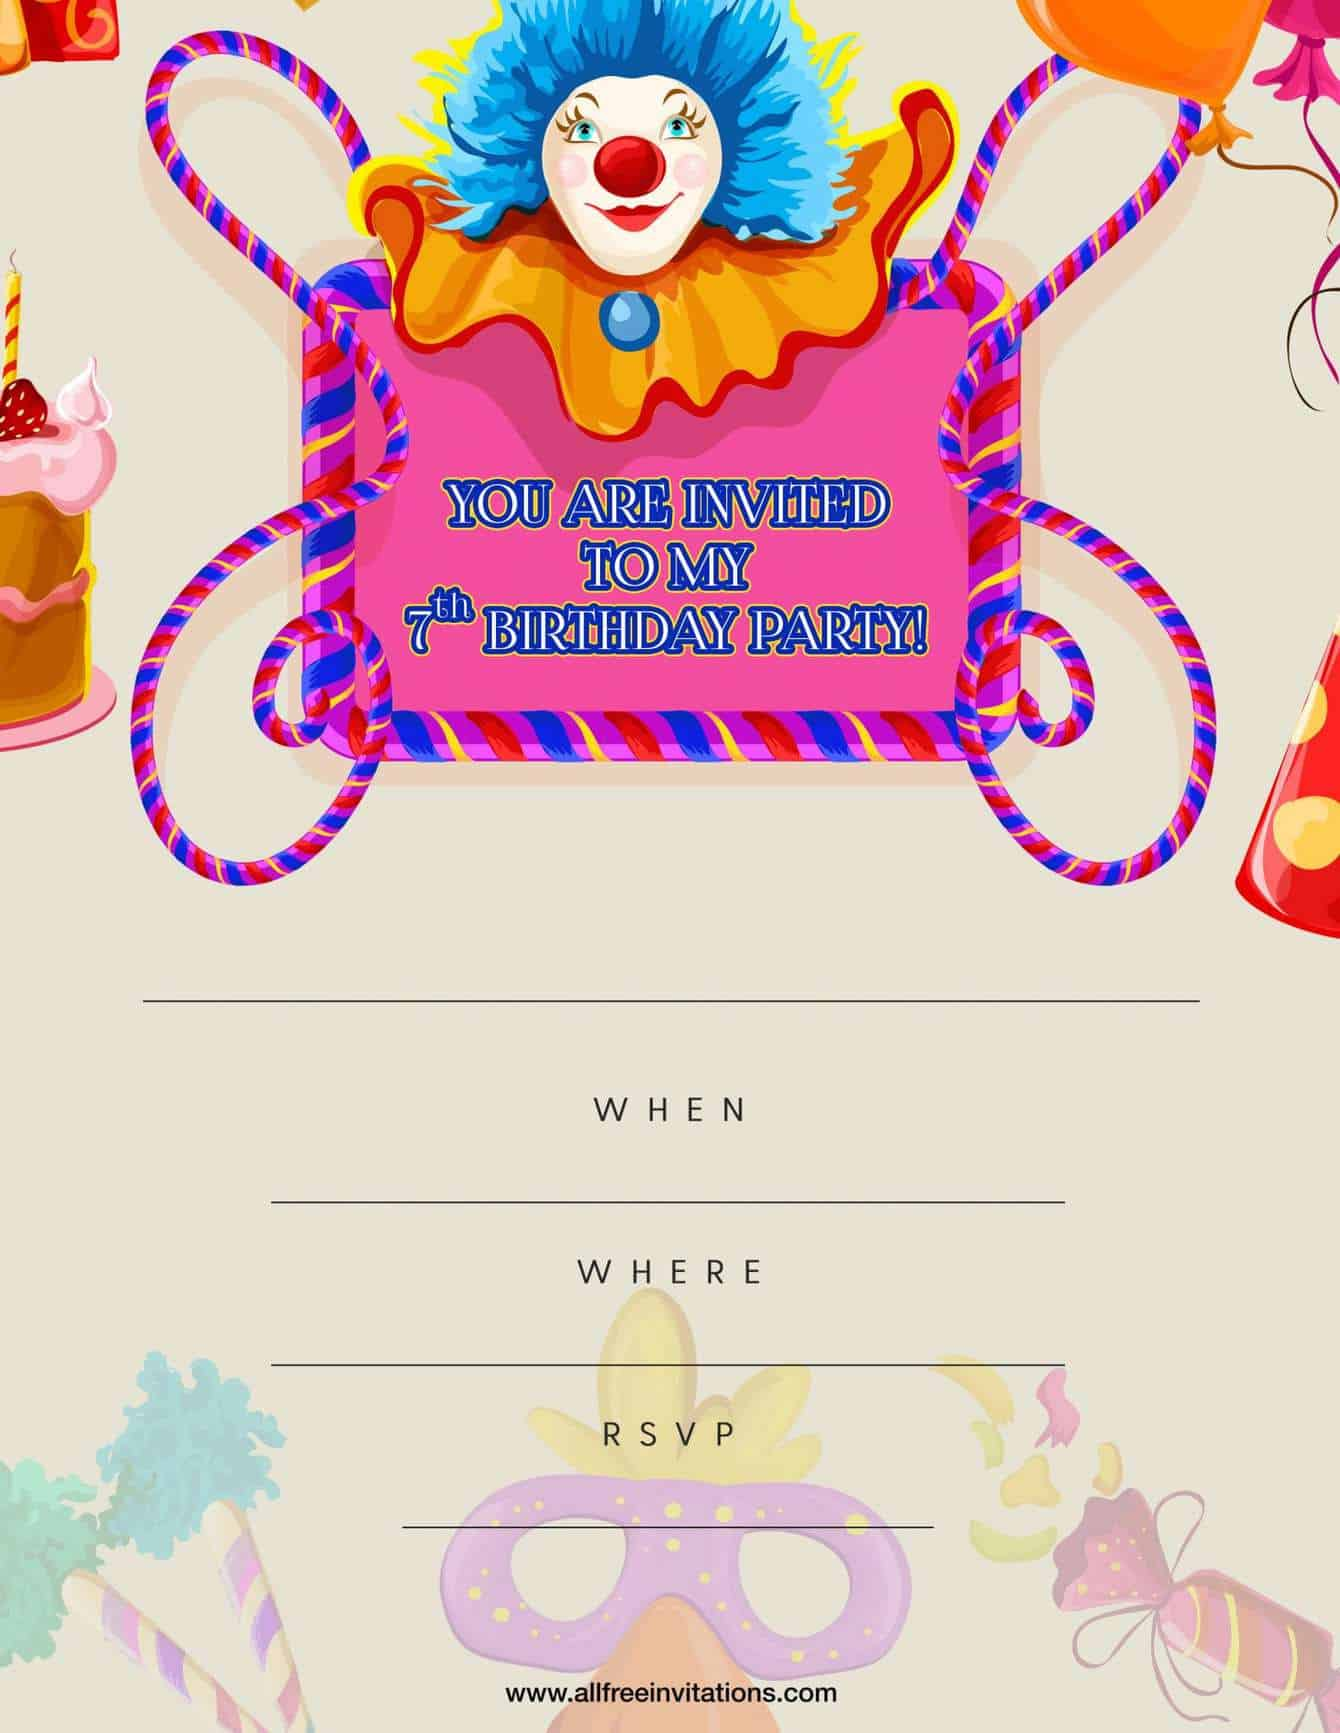 7th Birthday Party Invitation Pink Blue Clown